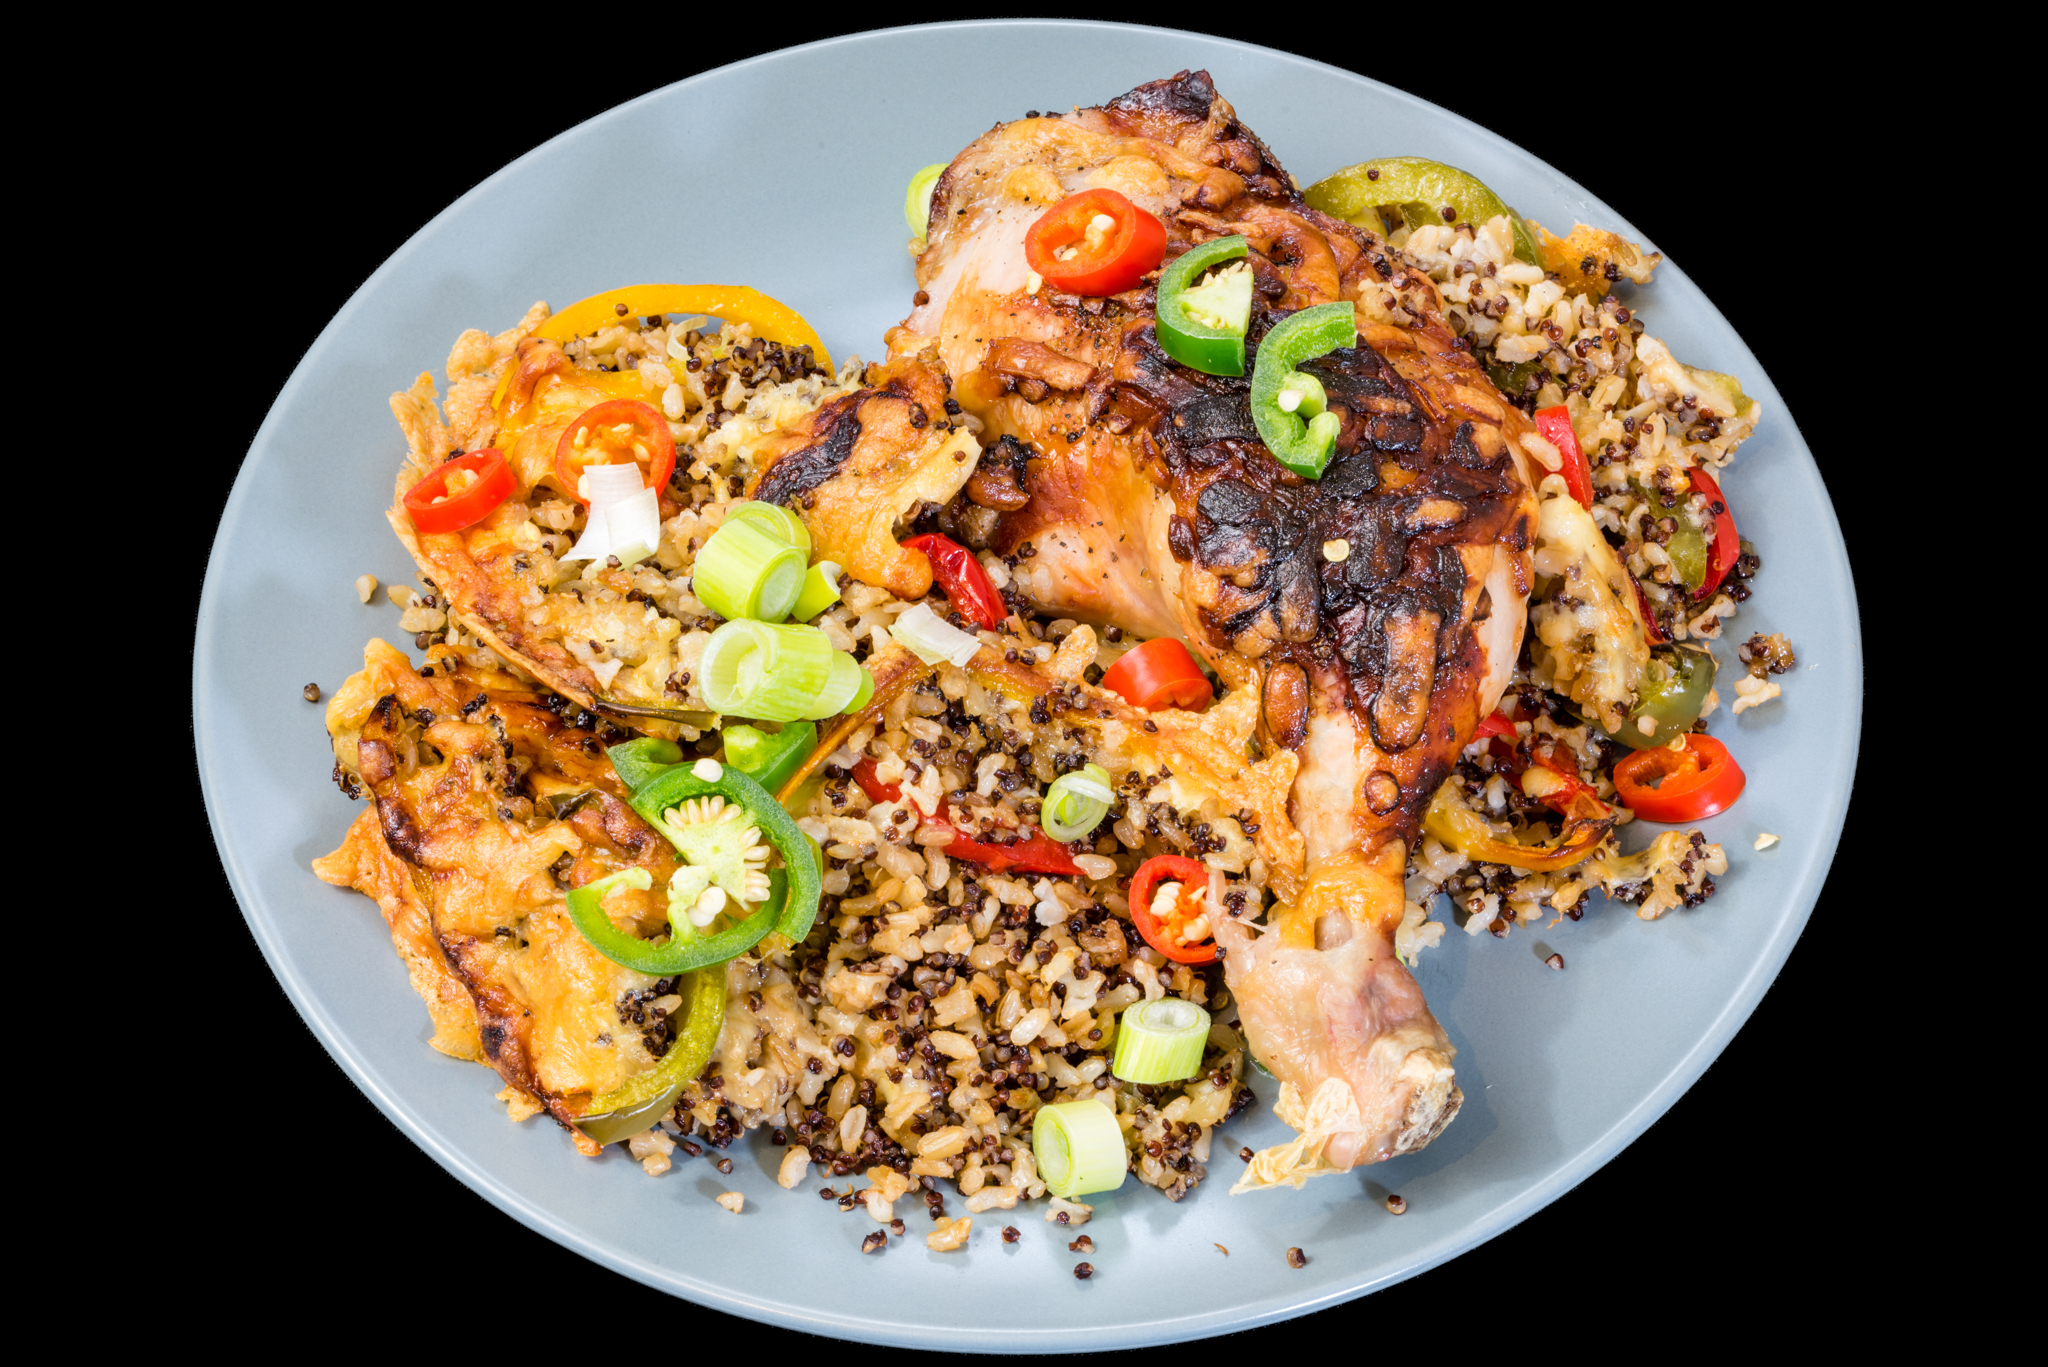 Baked cheesy Chicken Maryland with crispy quinoa rice, capsicum, jalapeños, chillis and spring onions